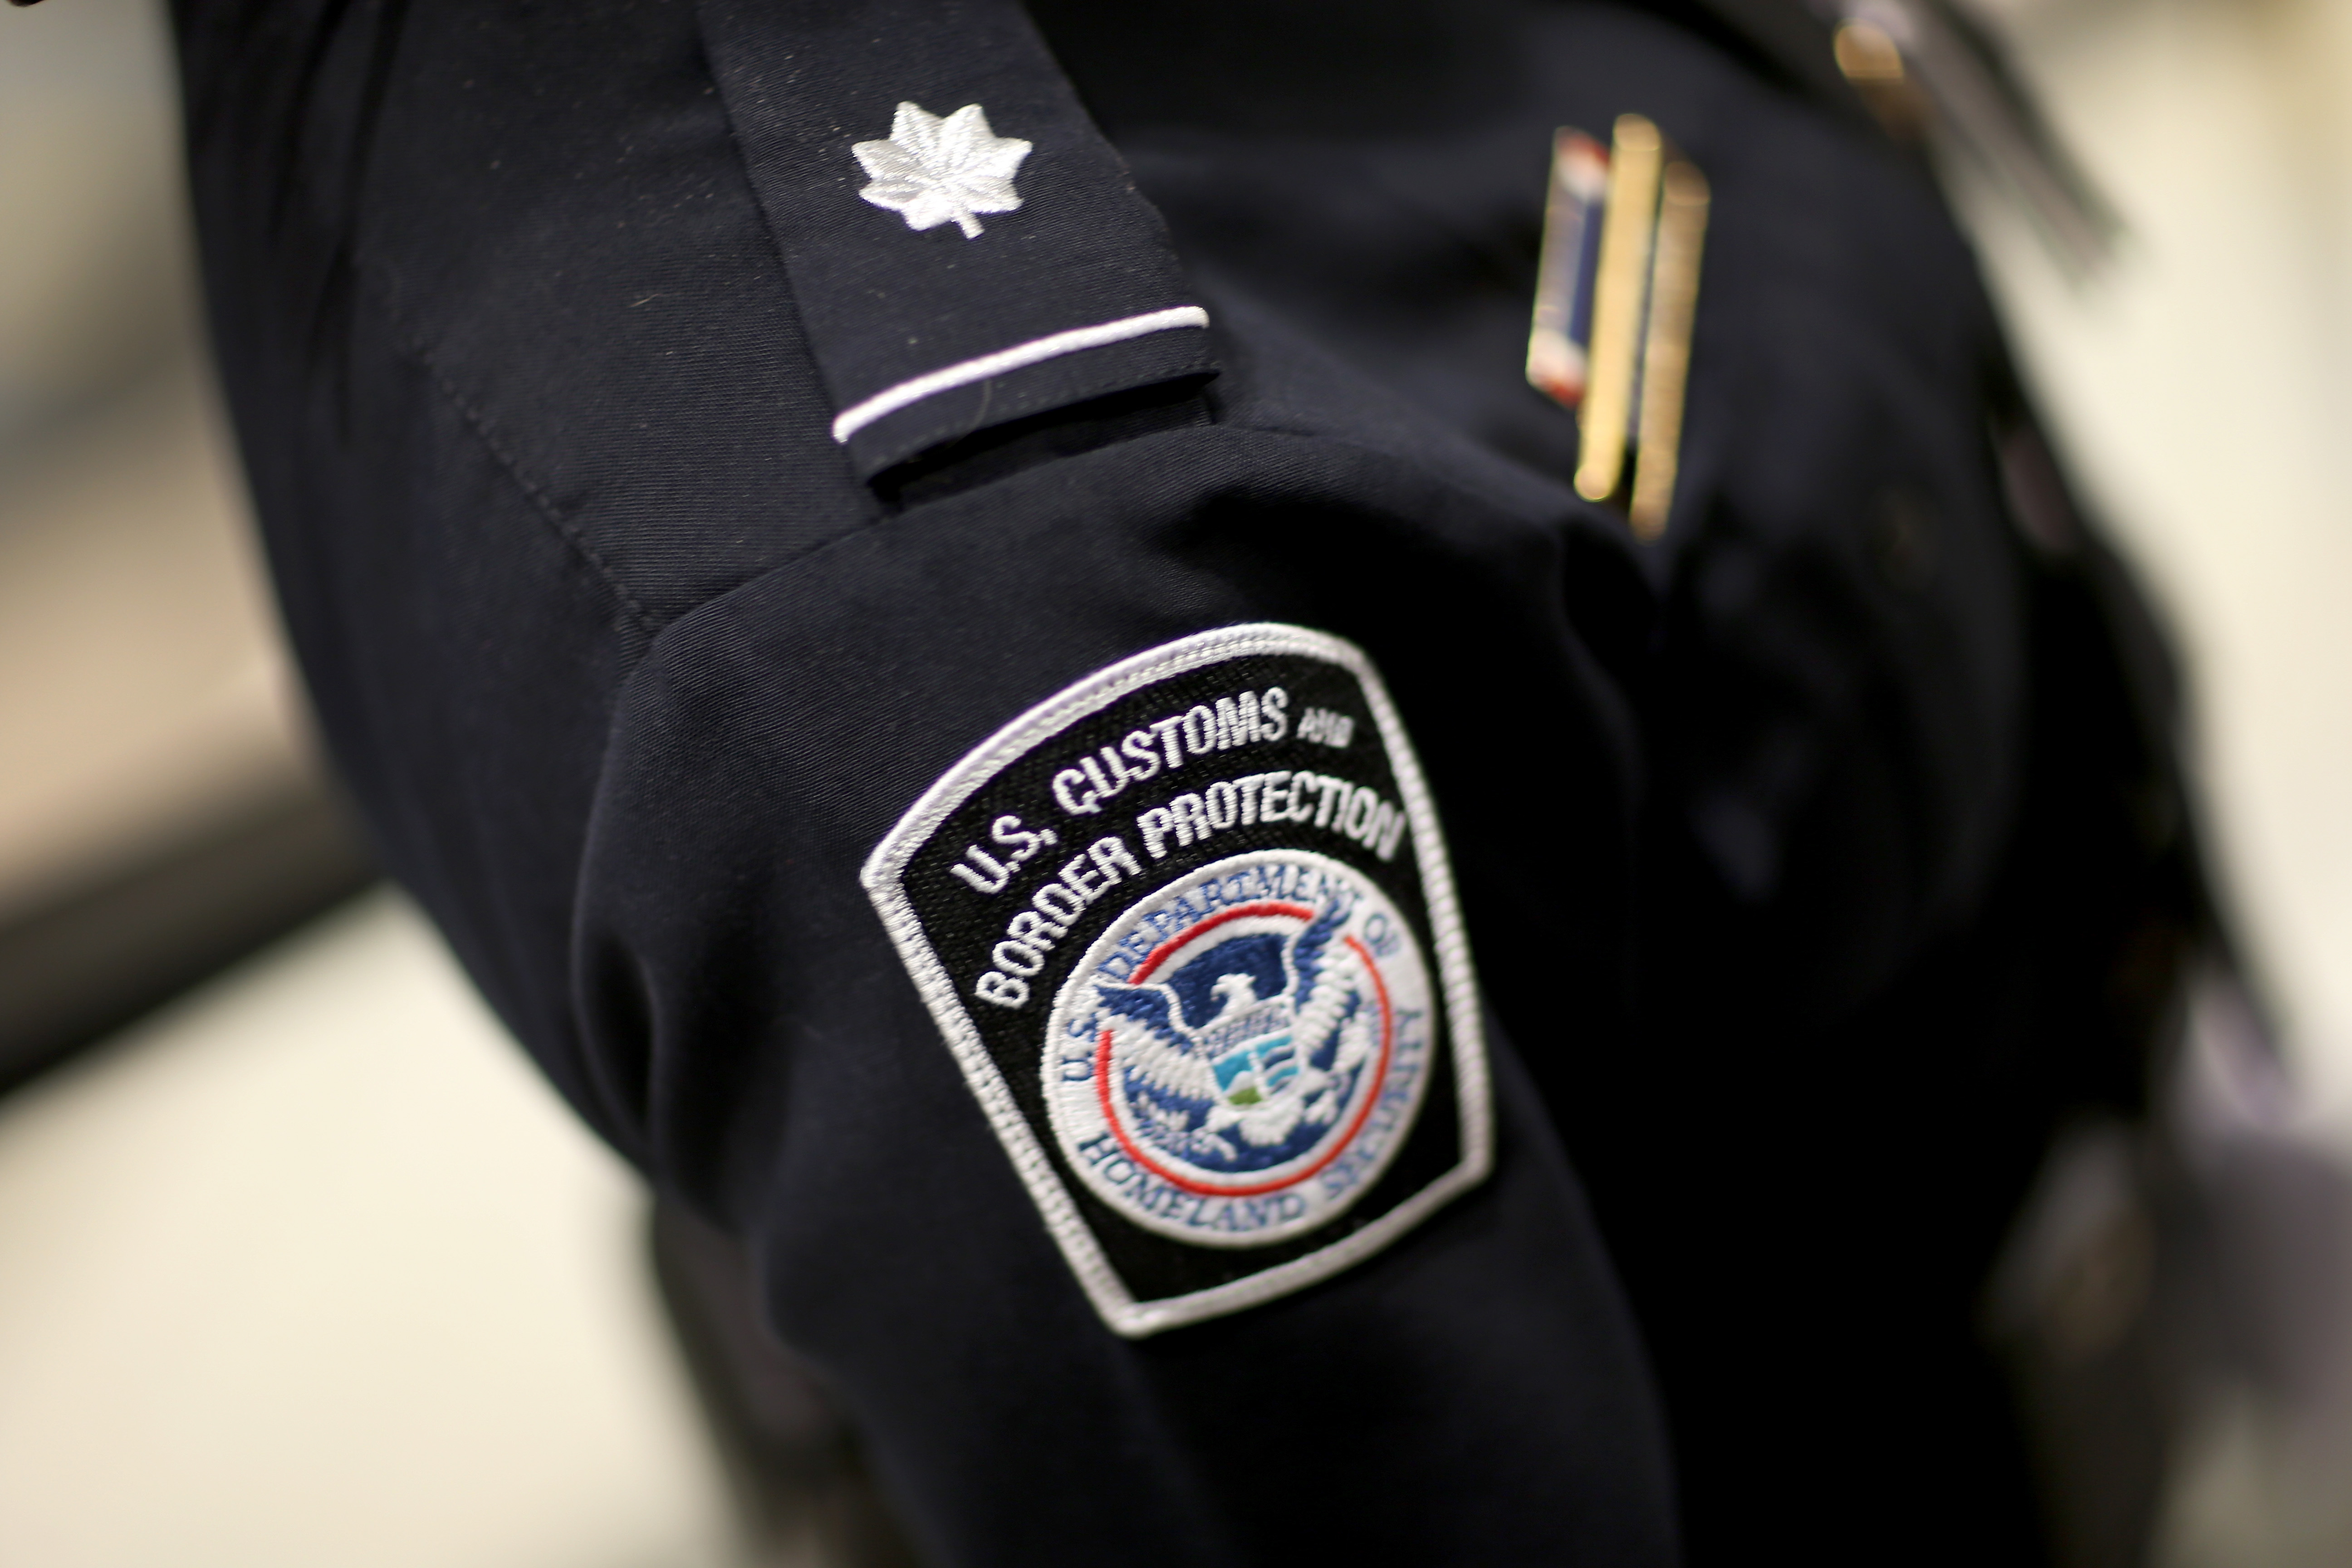 U.S. Customs and Border Patrol agents have been making more arrests in recent weeks. (Getty Images)